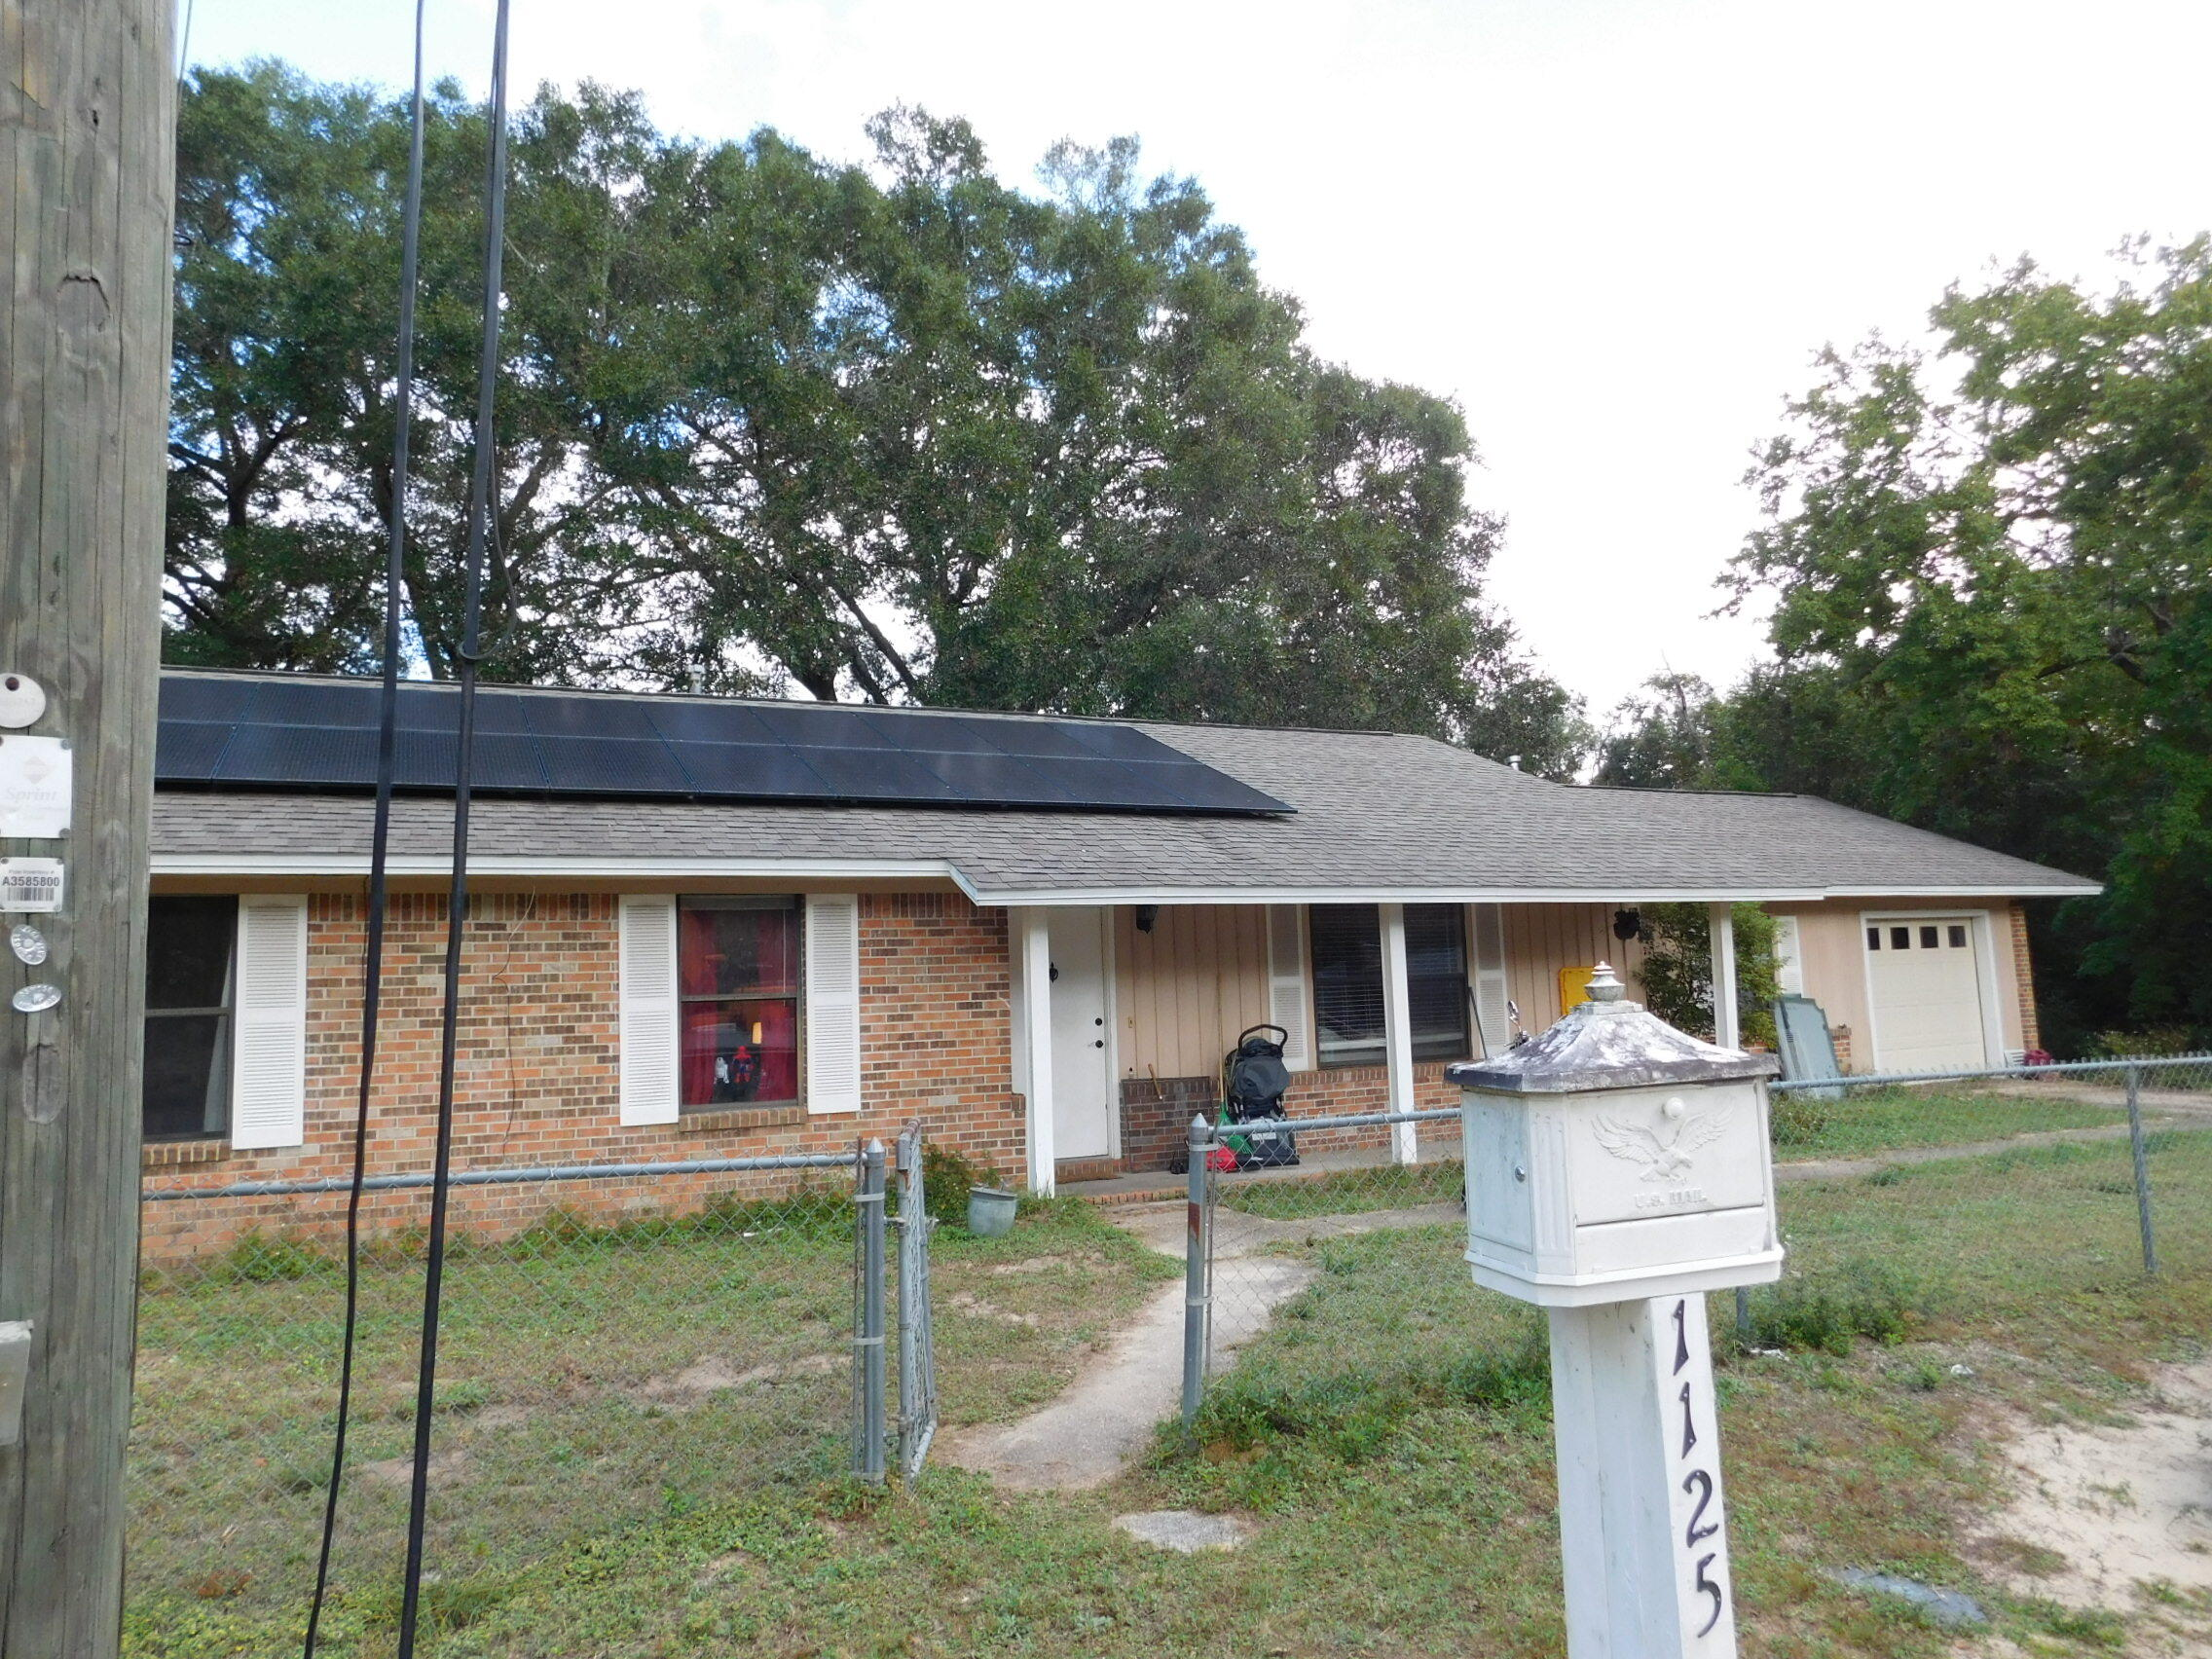 Are you an Investor, first time home buyer or wanting purchase your piece of Niceville? This home might be the property for you.  Whether you are looking to house a boat, RV, or put in a pool, this large flat corner lot has plenty of room to do so. Home is close to the city complex, schools, college, and the Senior Center.  There will be a new roof and septic tank placed prior to closing.  Home does have Solar panels and will be paid off by seller in full at closing. Call today to view this property.